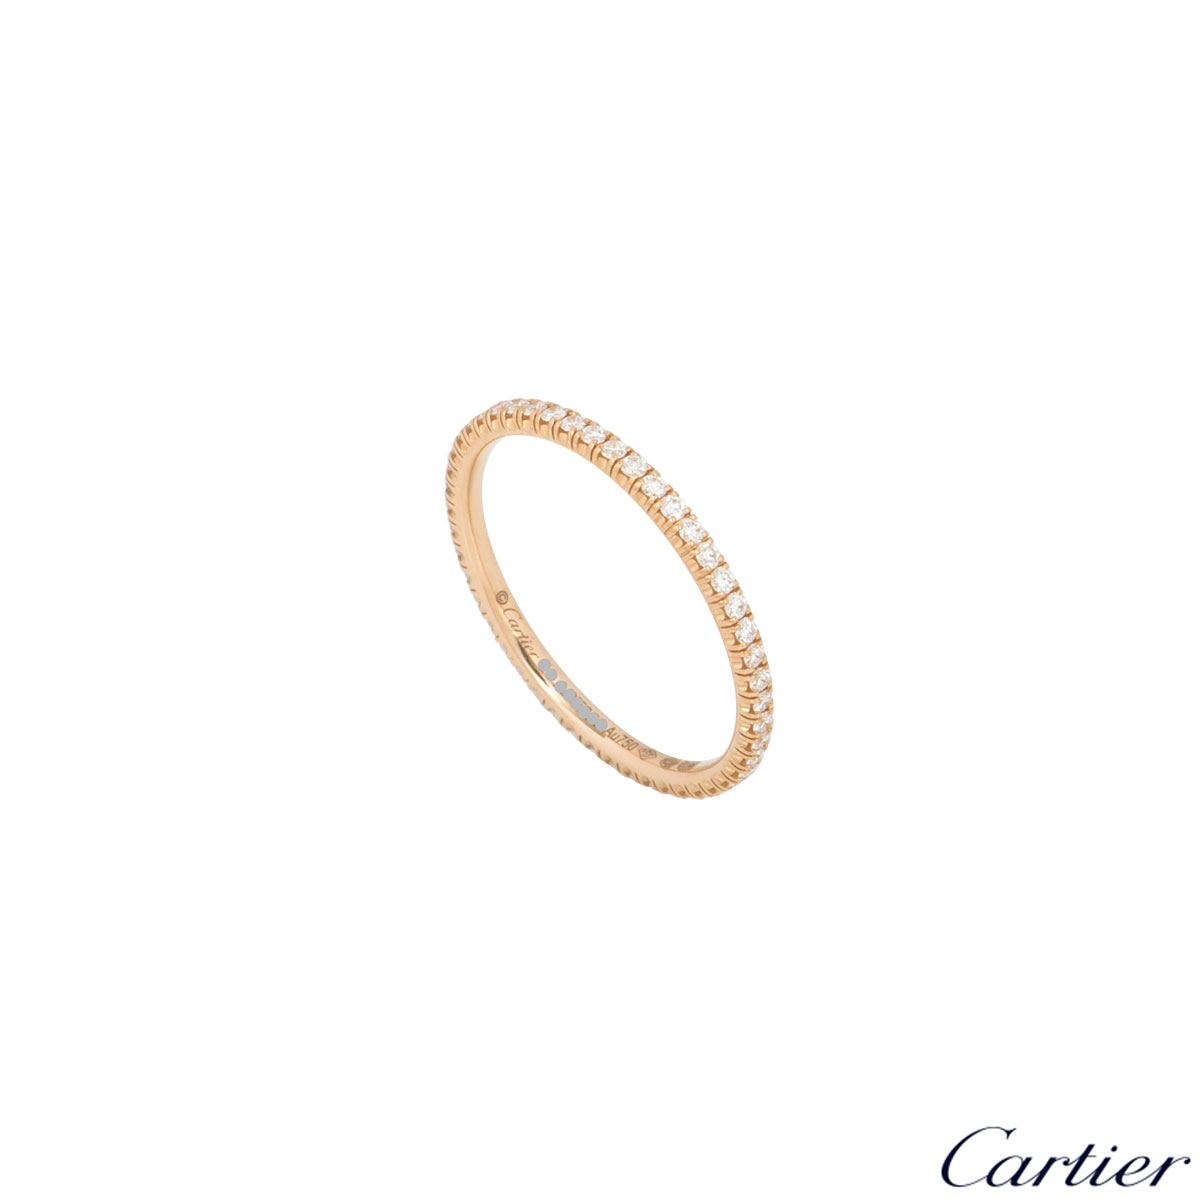 Cartier Rose Gold Diamond Etincelle Ring B4210551